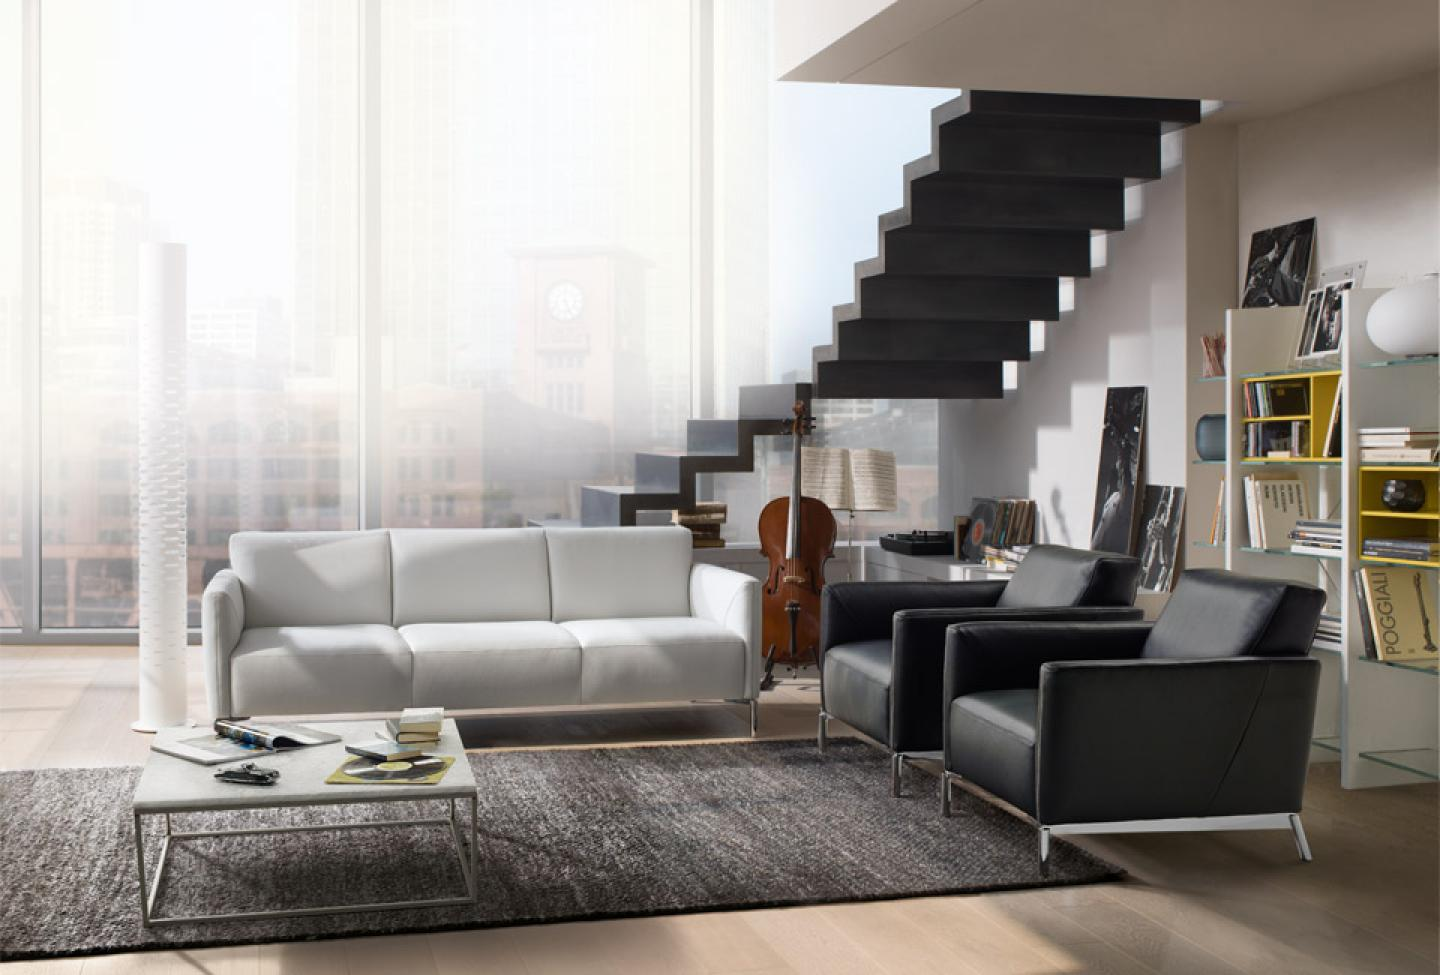 canap nantes natuzzi. Black Bedroom Furniture Sets. Home Design Ideas